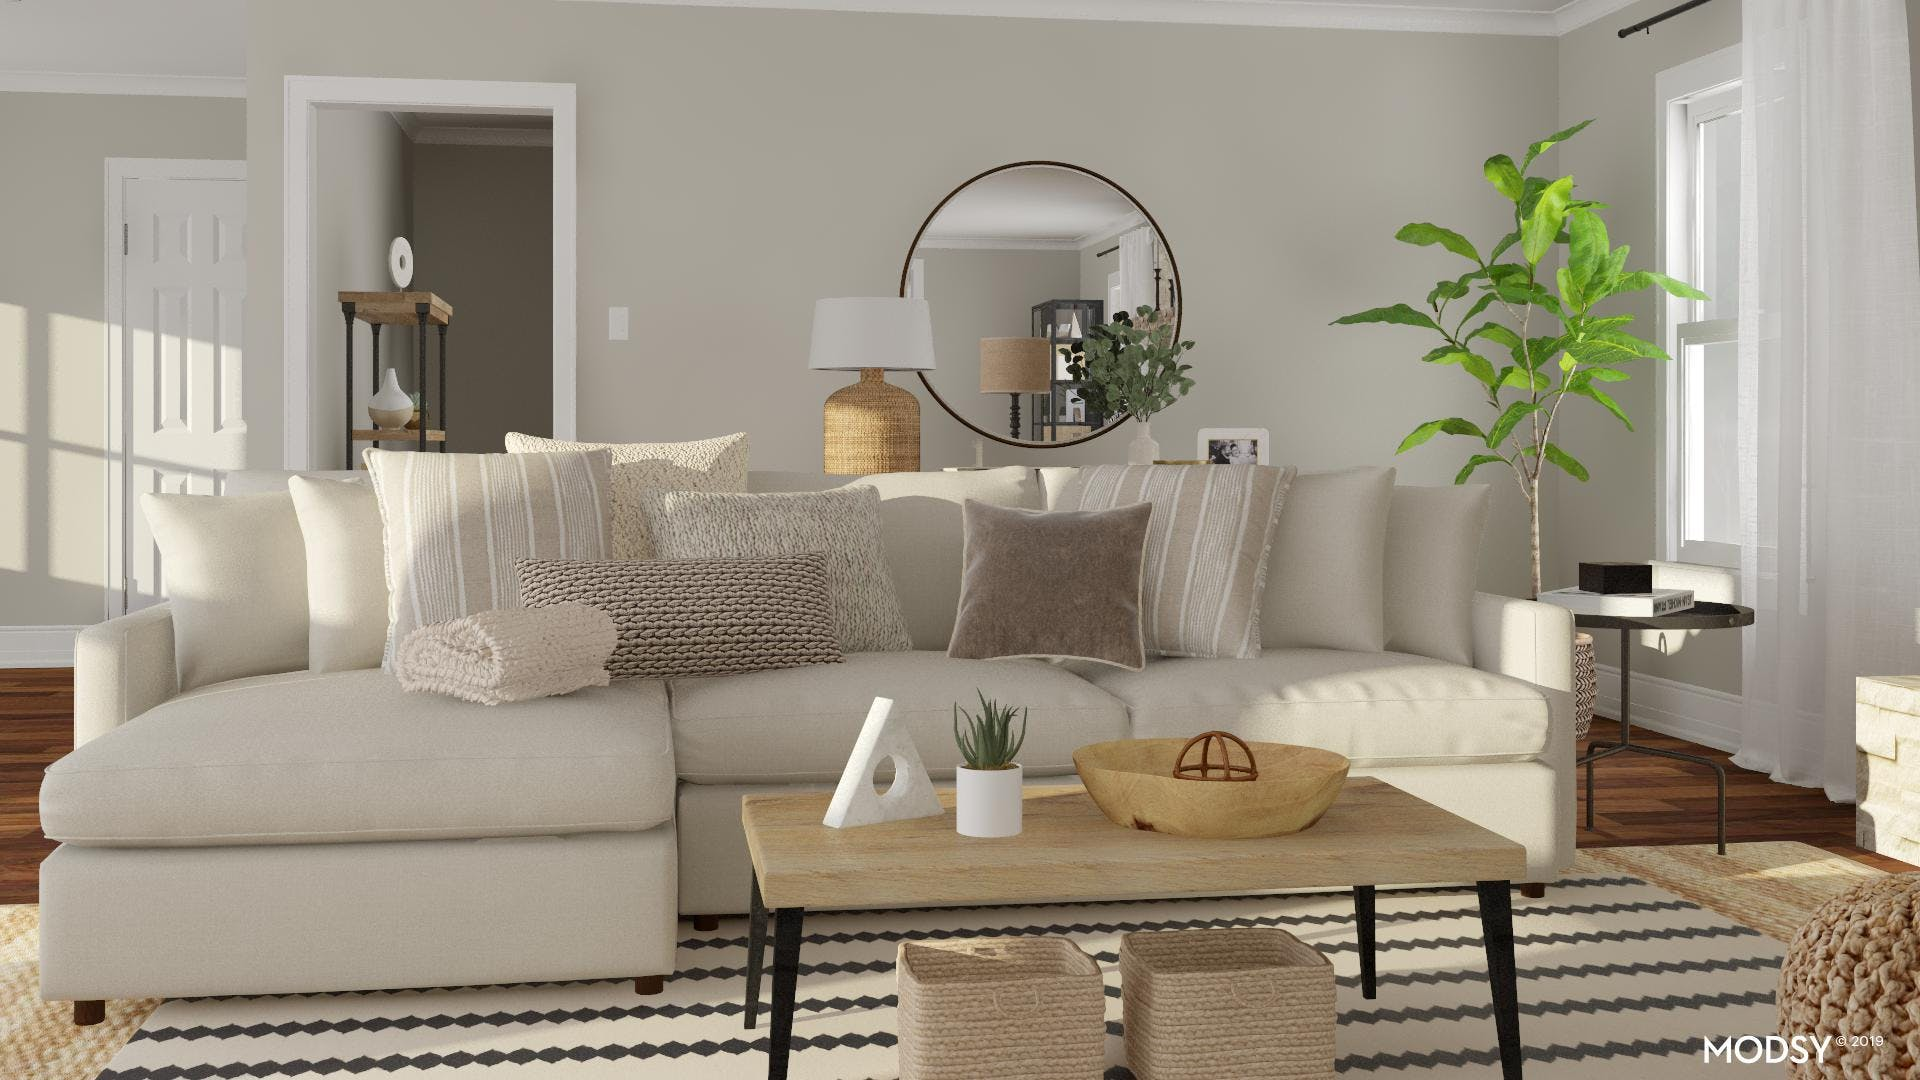 Rustic Neutral Sofa Styling